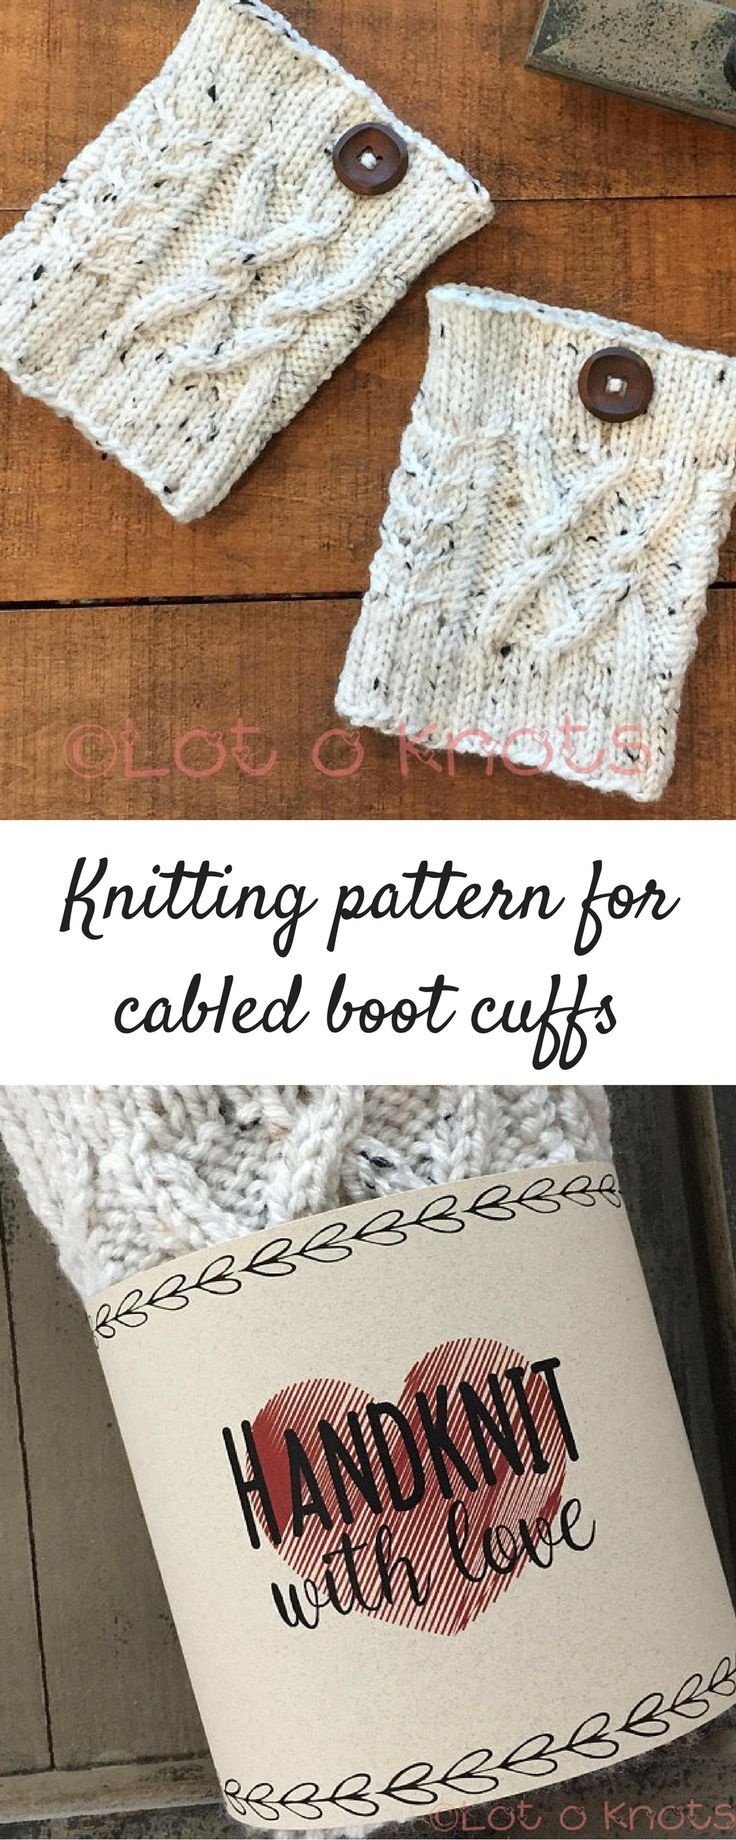 knitting pattern for cabled boot cuffs comes with a printable wrap